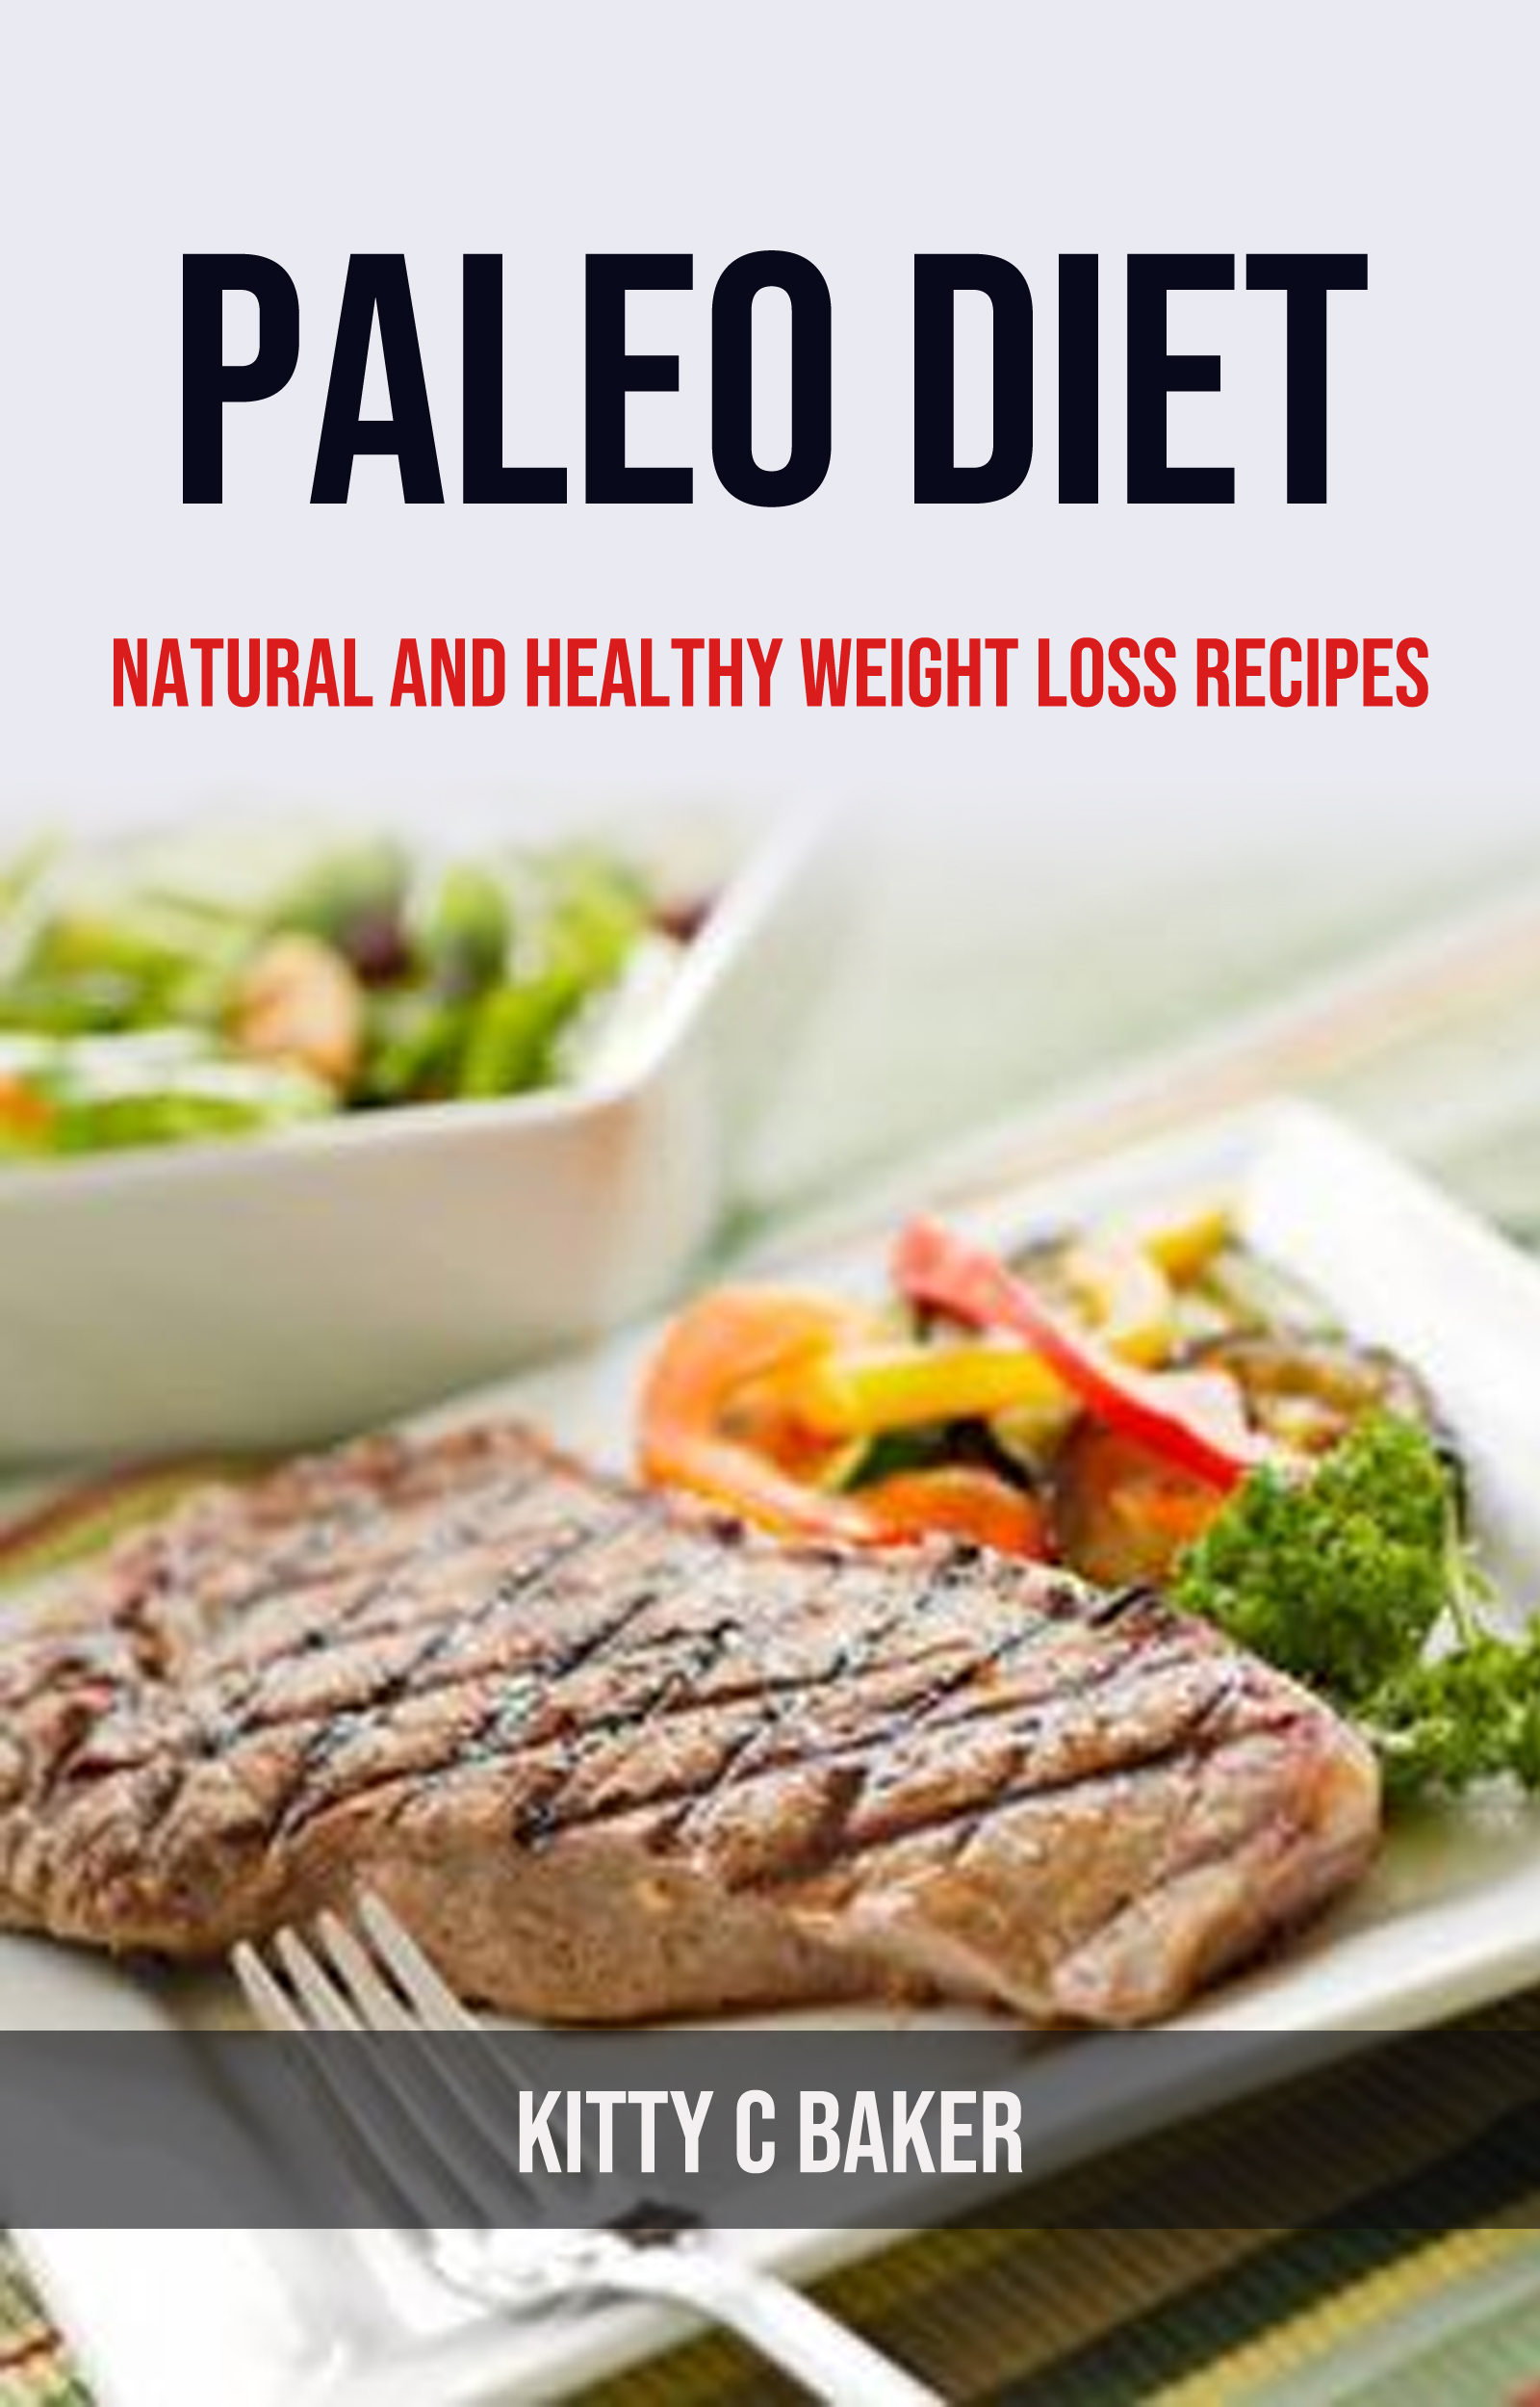 Paleo diet: natural and healthy weight loss recipes